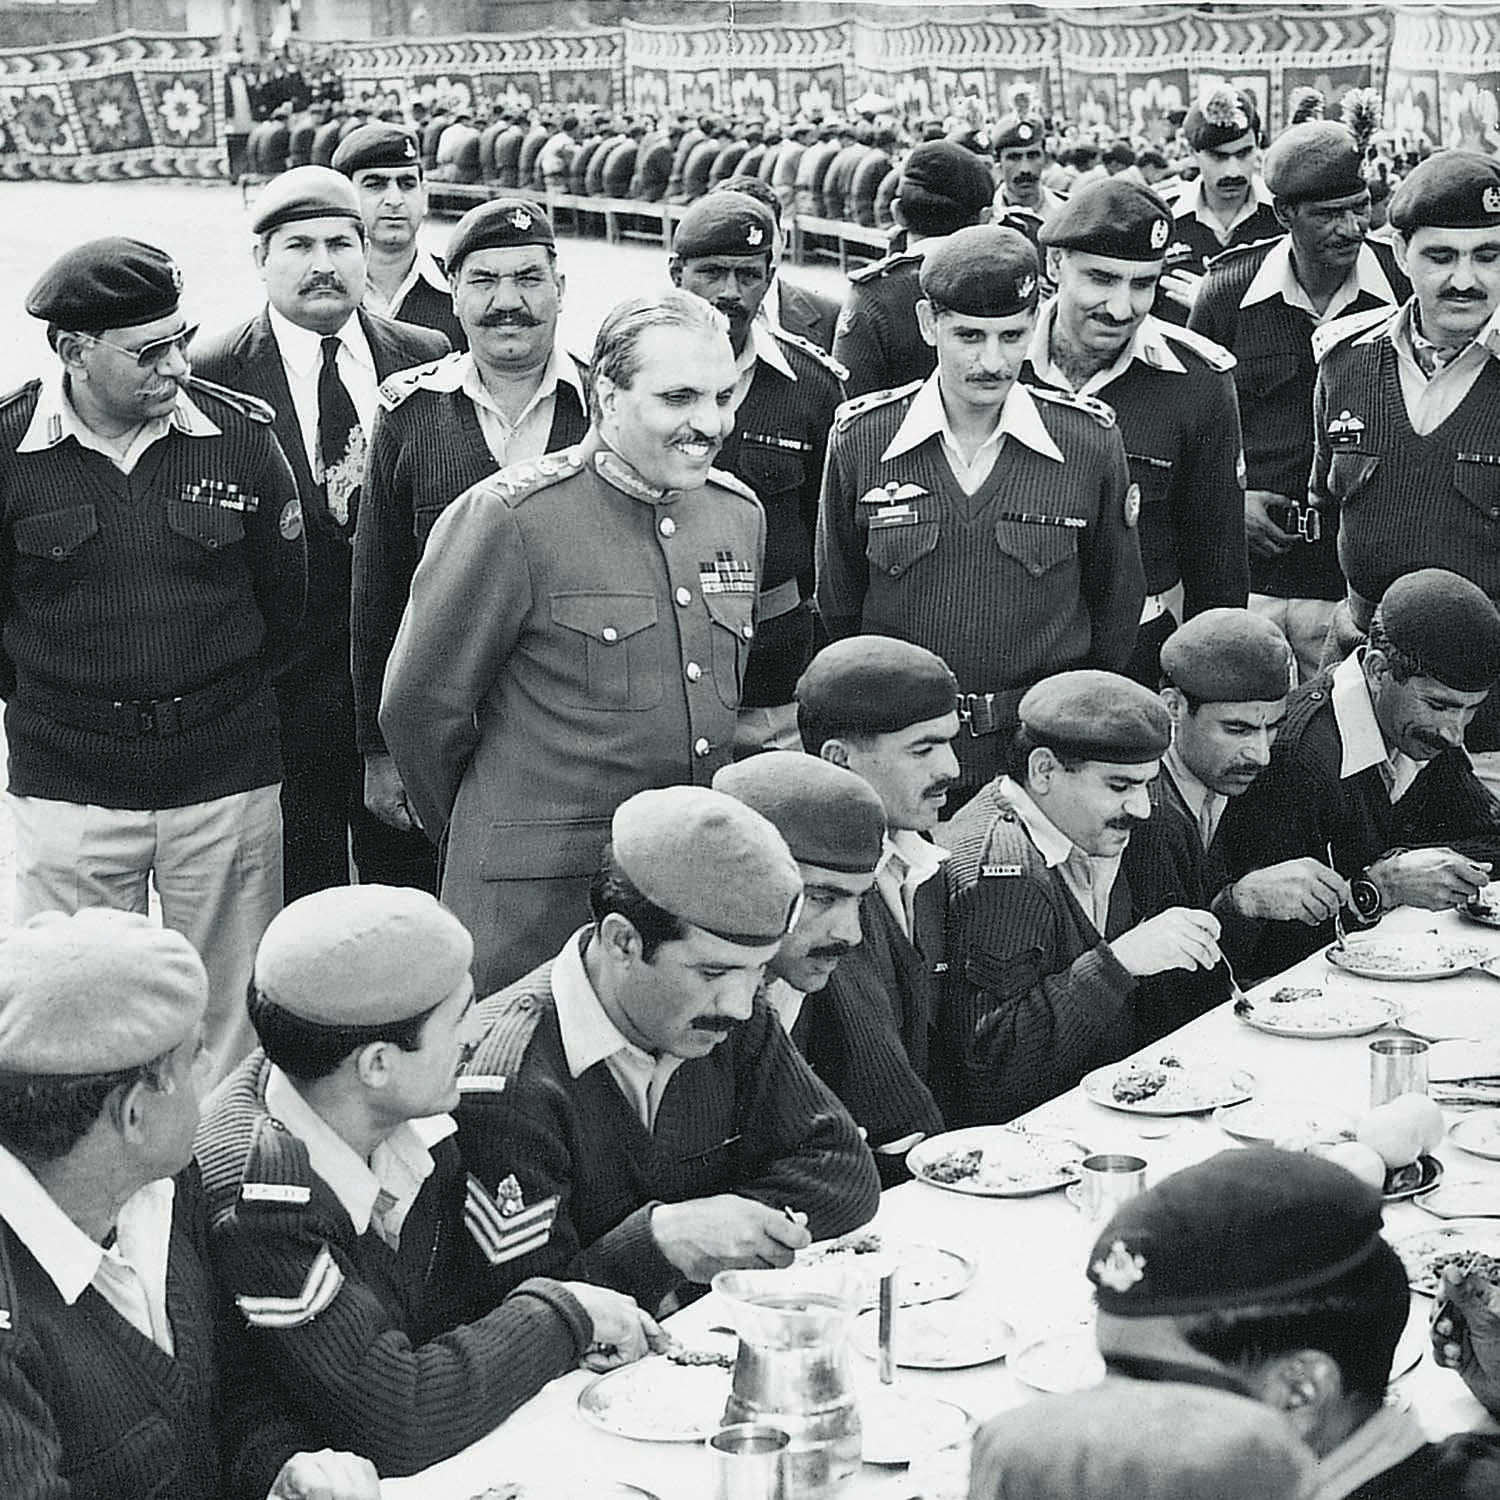 GENERAL Ziaul Haq, flanked by senior officers, is seen smiling at the traditional soldiers' feast held at the Army barracks. At least in public, Zia was all smiles all the times. | Photo: Dawn / White Star Archives